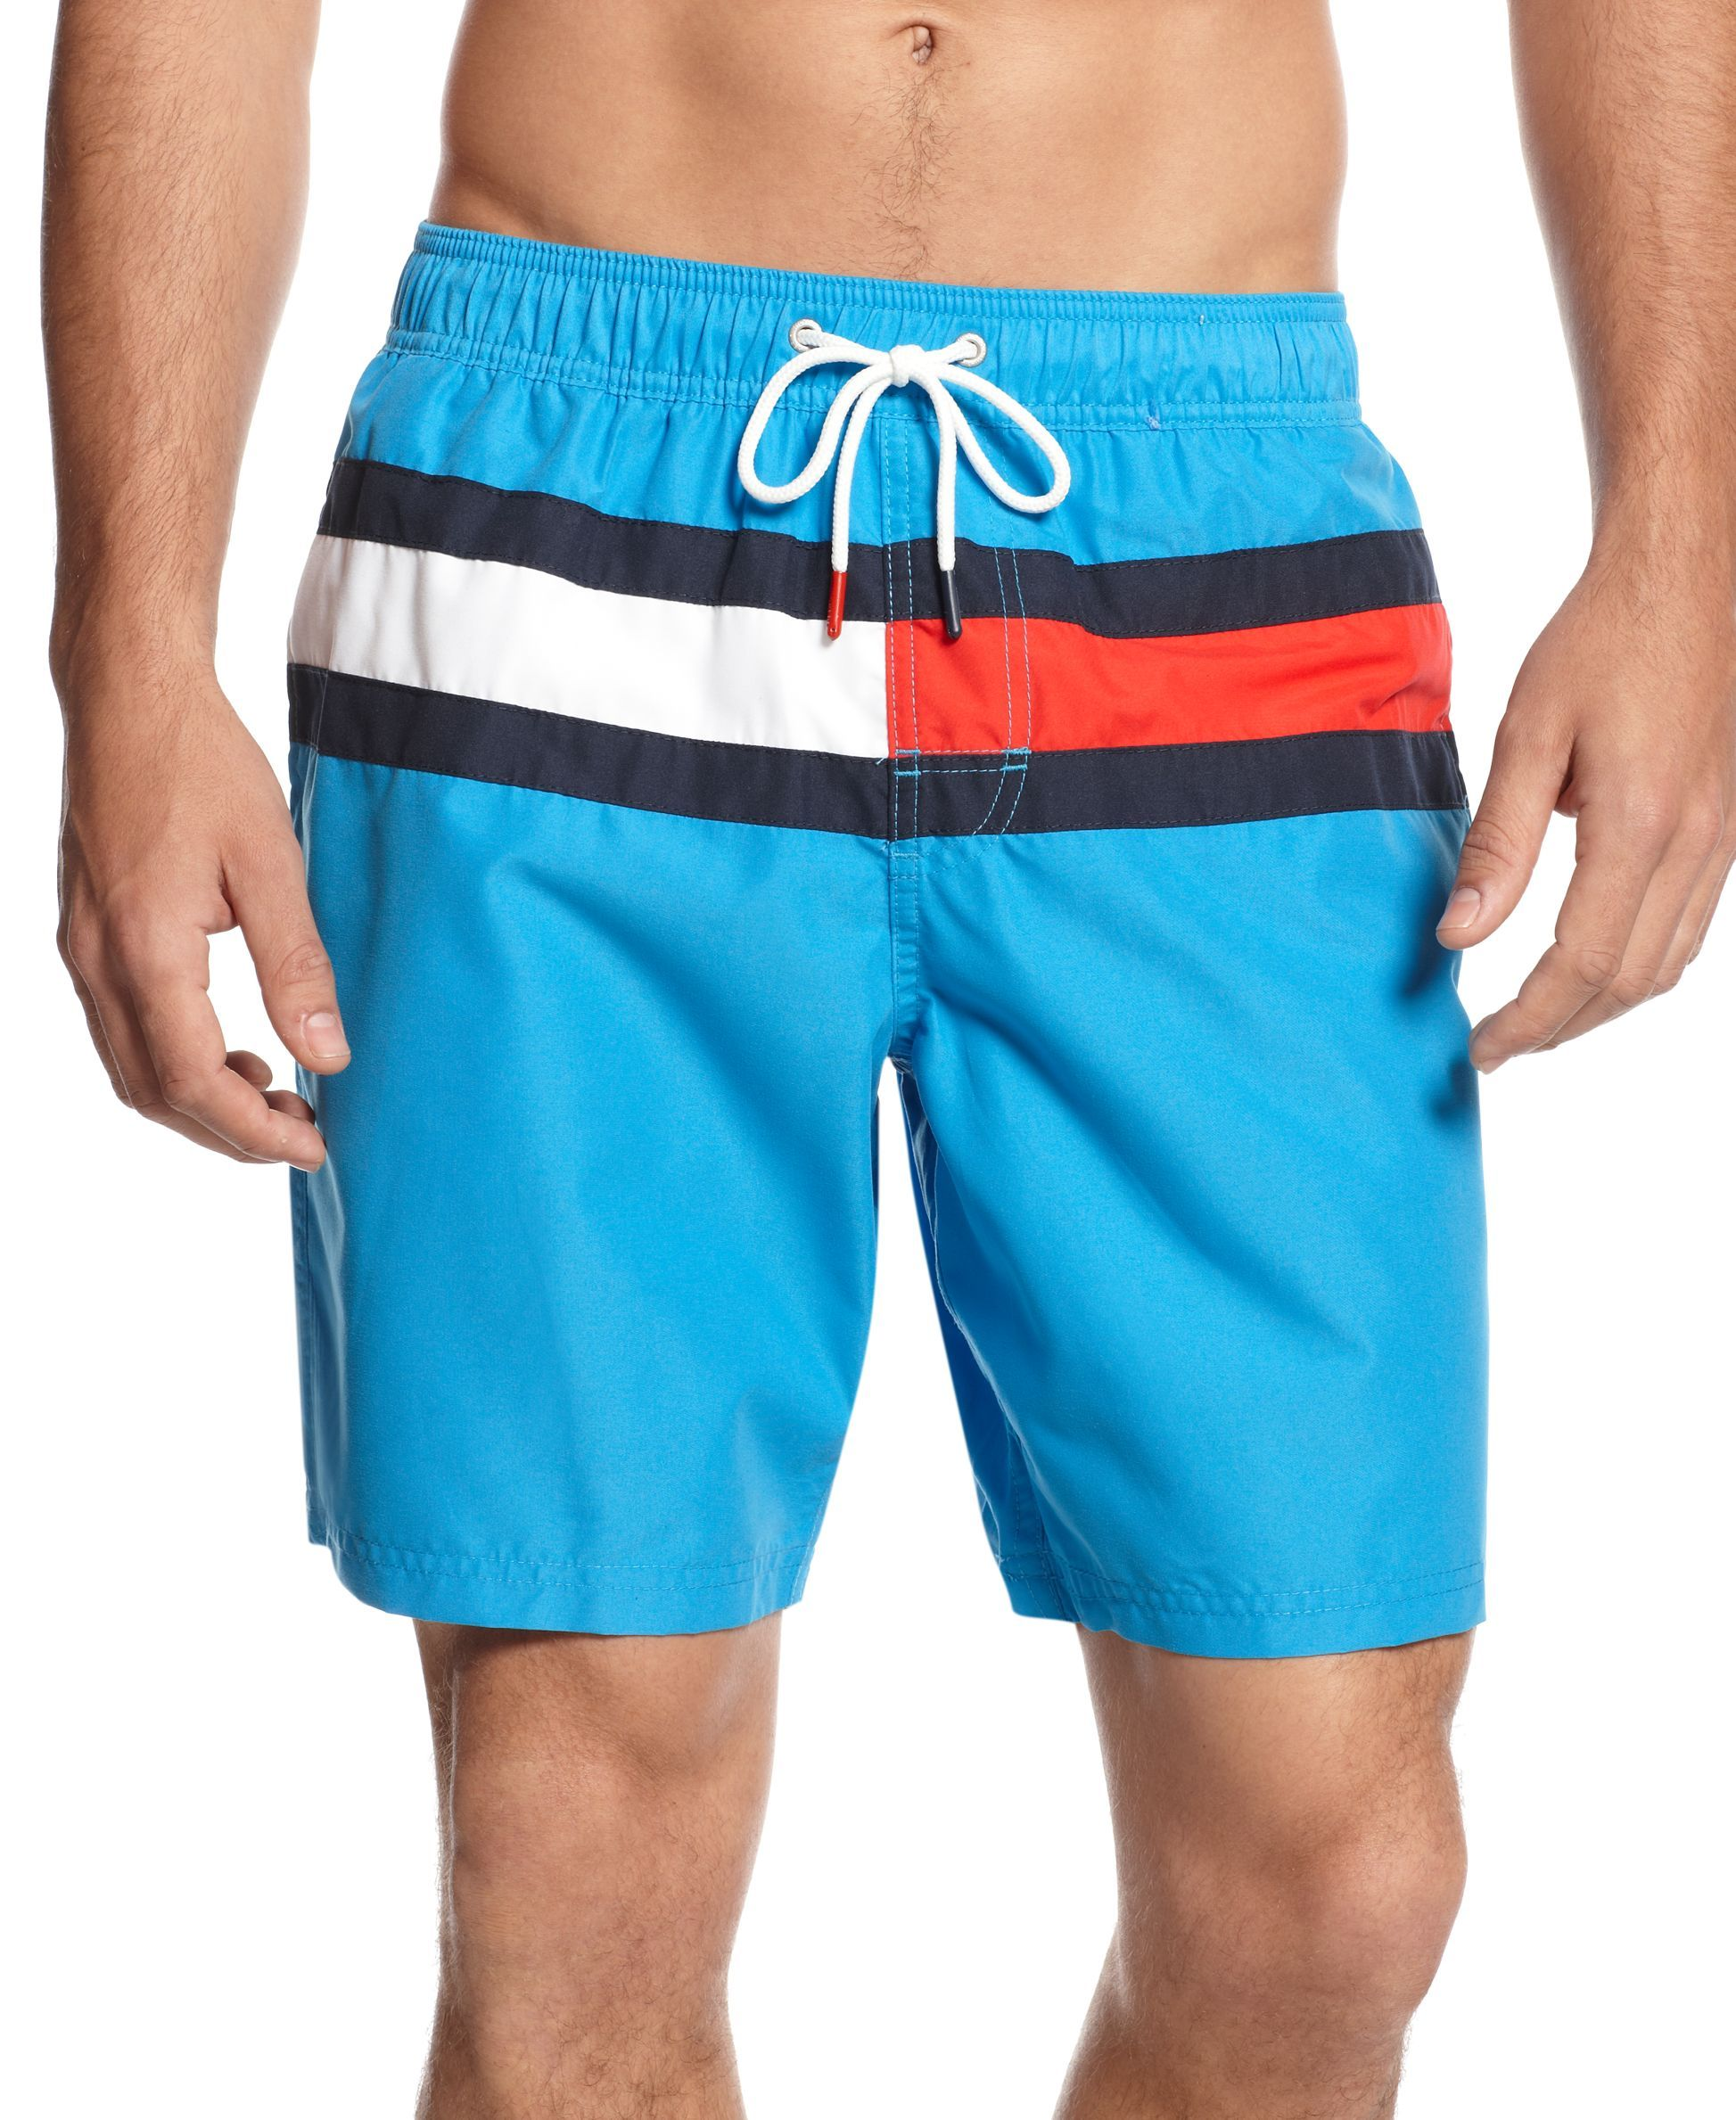 5dbdad5e4d474 Tommy Hilfiger Flag It Swim Trunks | Cool stuff 51 in 2019 | Swim ...